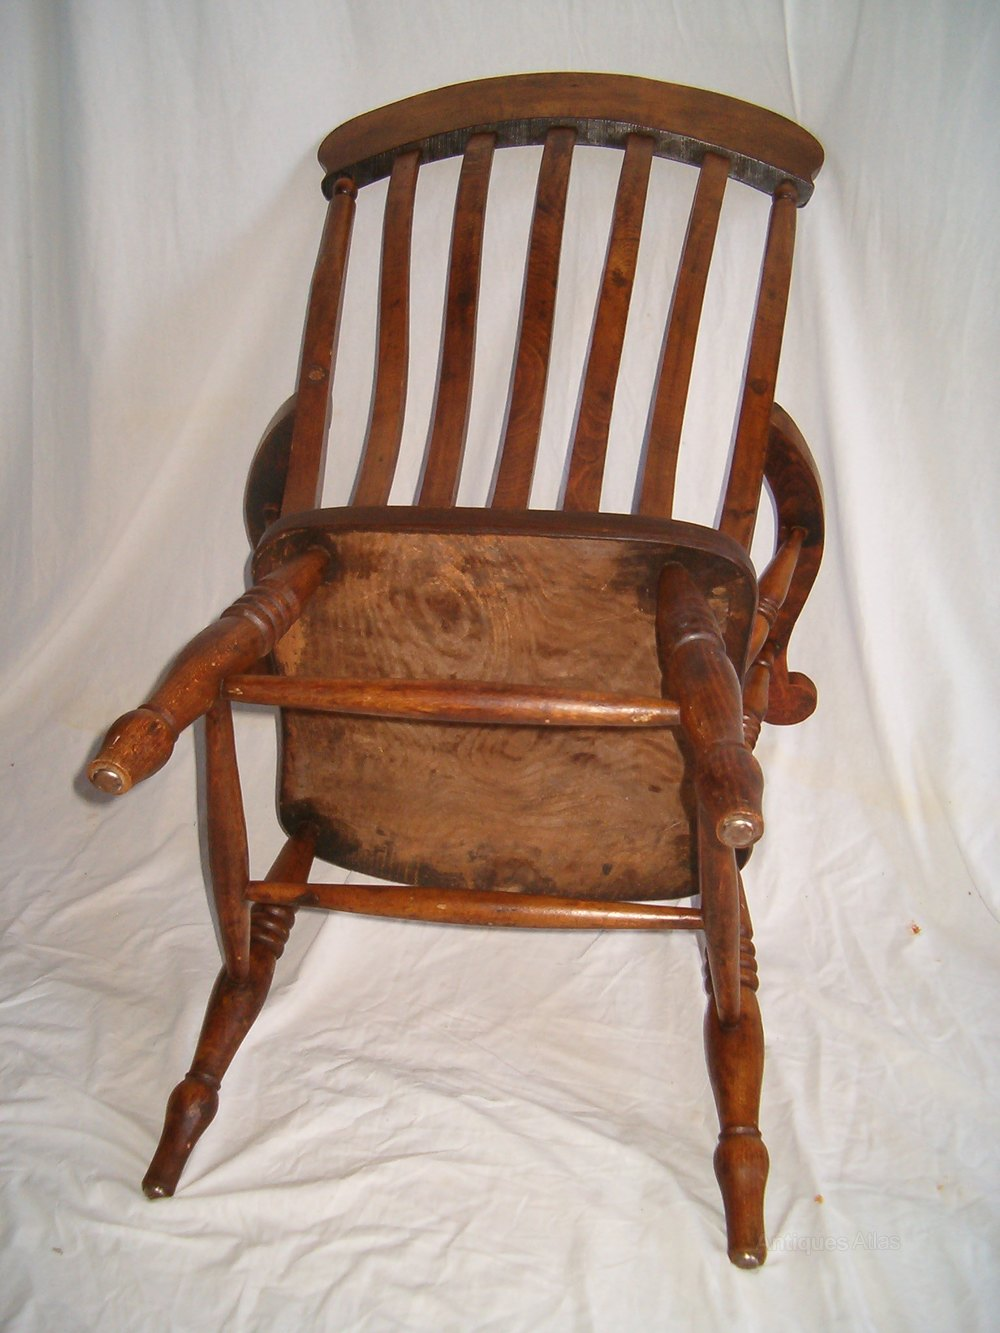 Dating windsor chairs